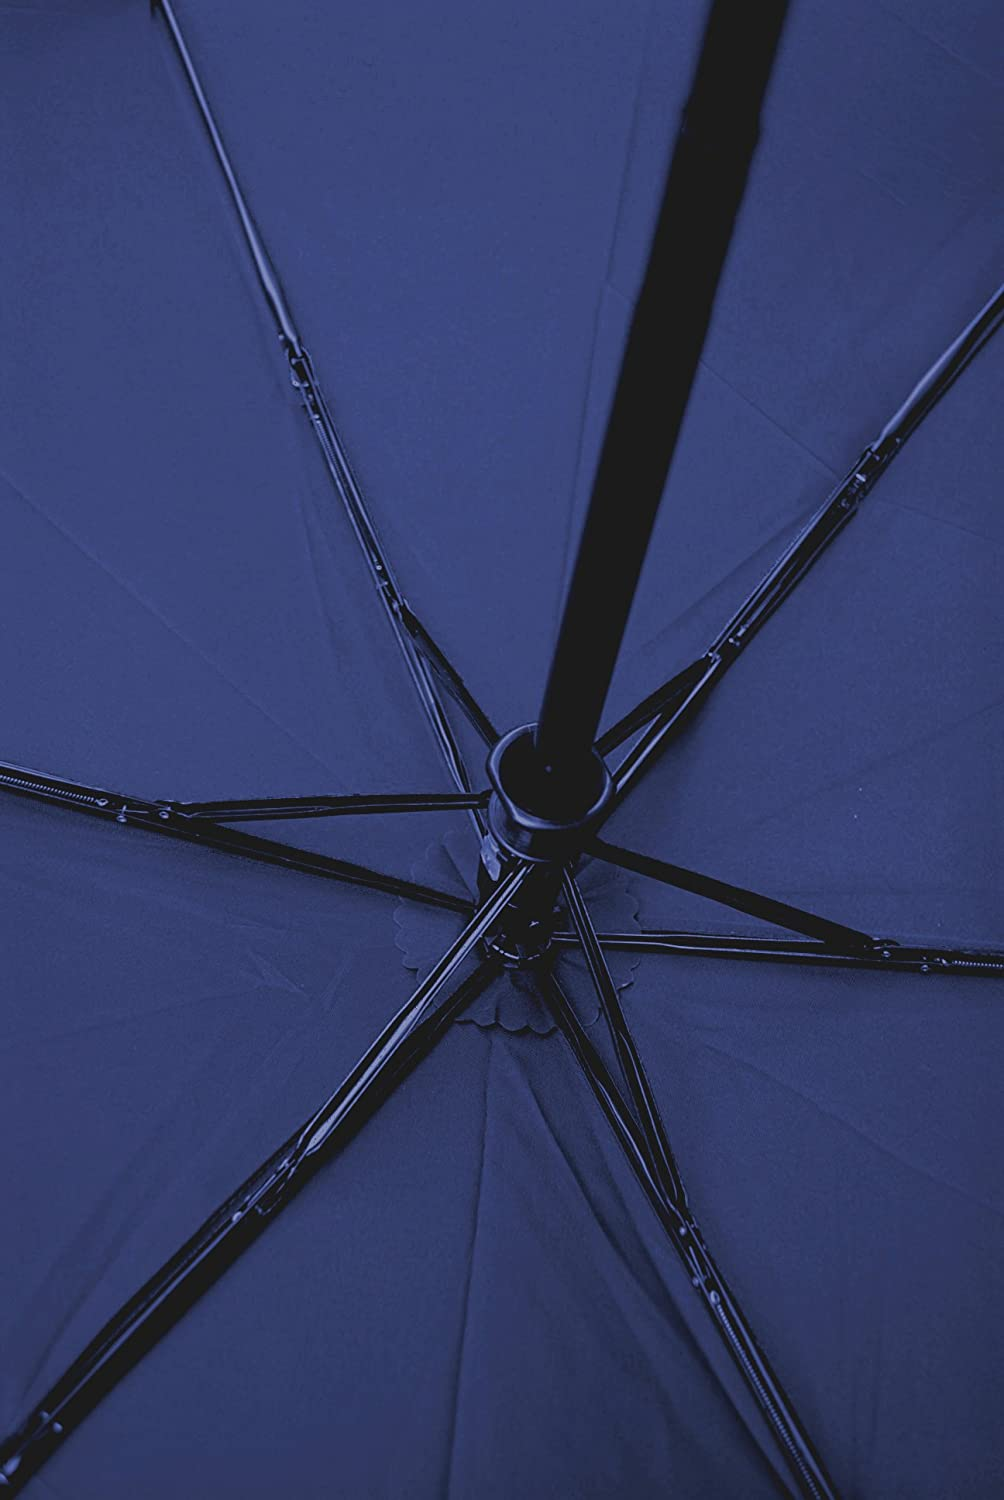 1.5 Inch ULTRA FLAT YET STRONG COLLAR AND CUFFS LONDON Windproof Umbrella Auto Open /& Close Compact Folding Navy Blue